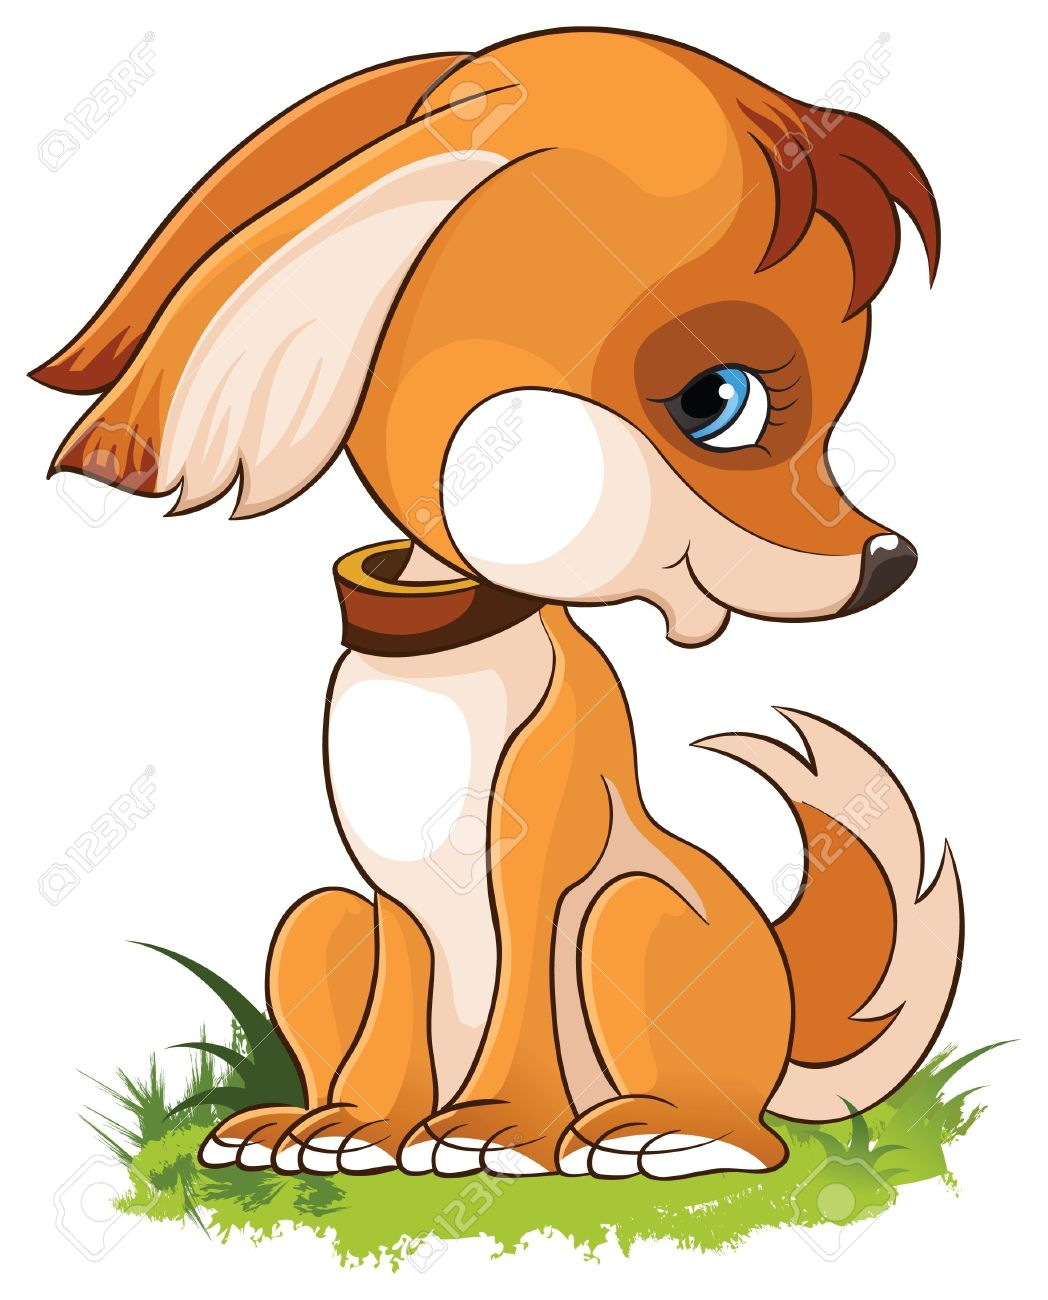 Cartoon Puppy Pictures : cartoon, puppy, pictures, Illustration, Cartoon, Puppy, Isolated, White, Background, Royalty, Cliparts,, Vectors,, Stock, Illustration., Image, 13697527.